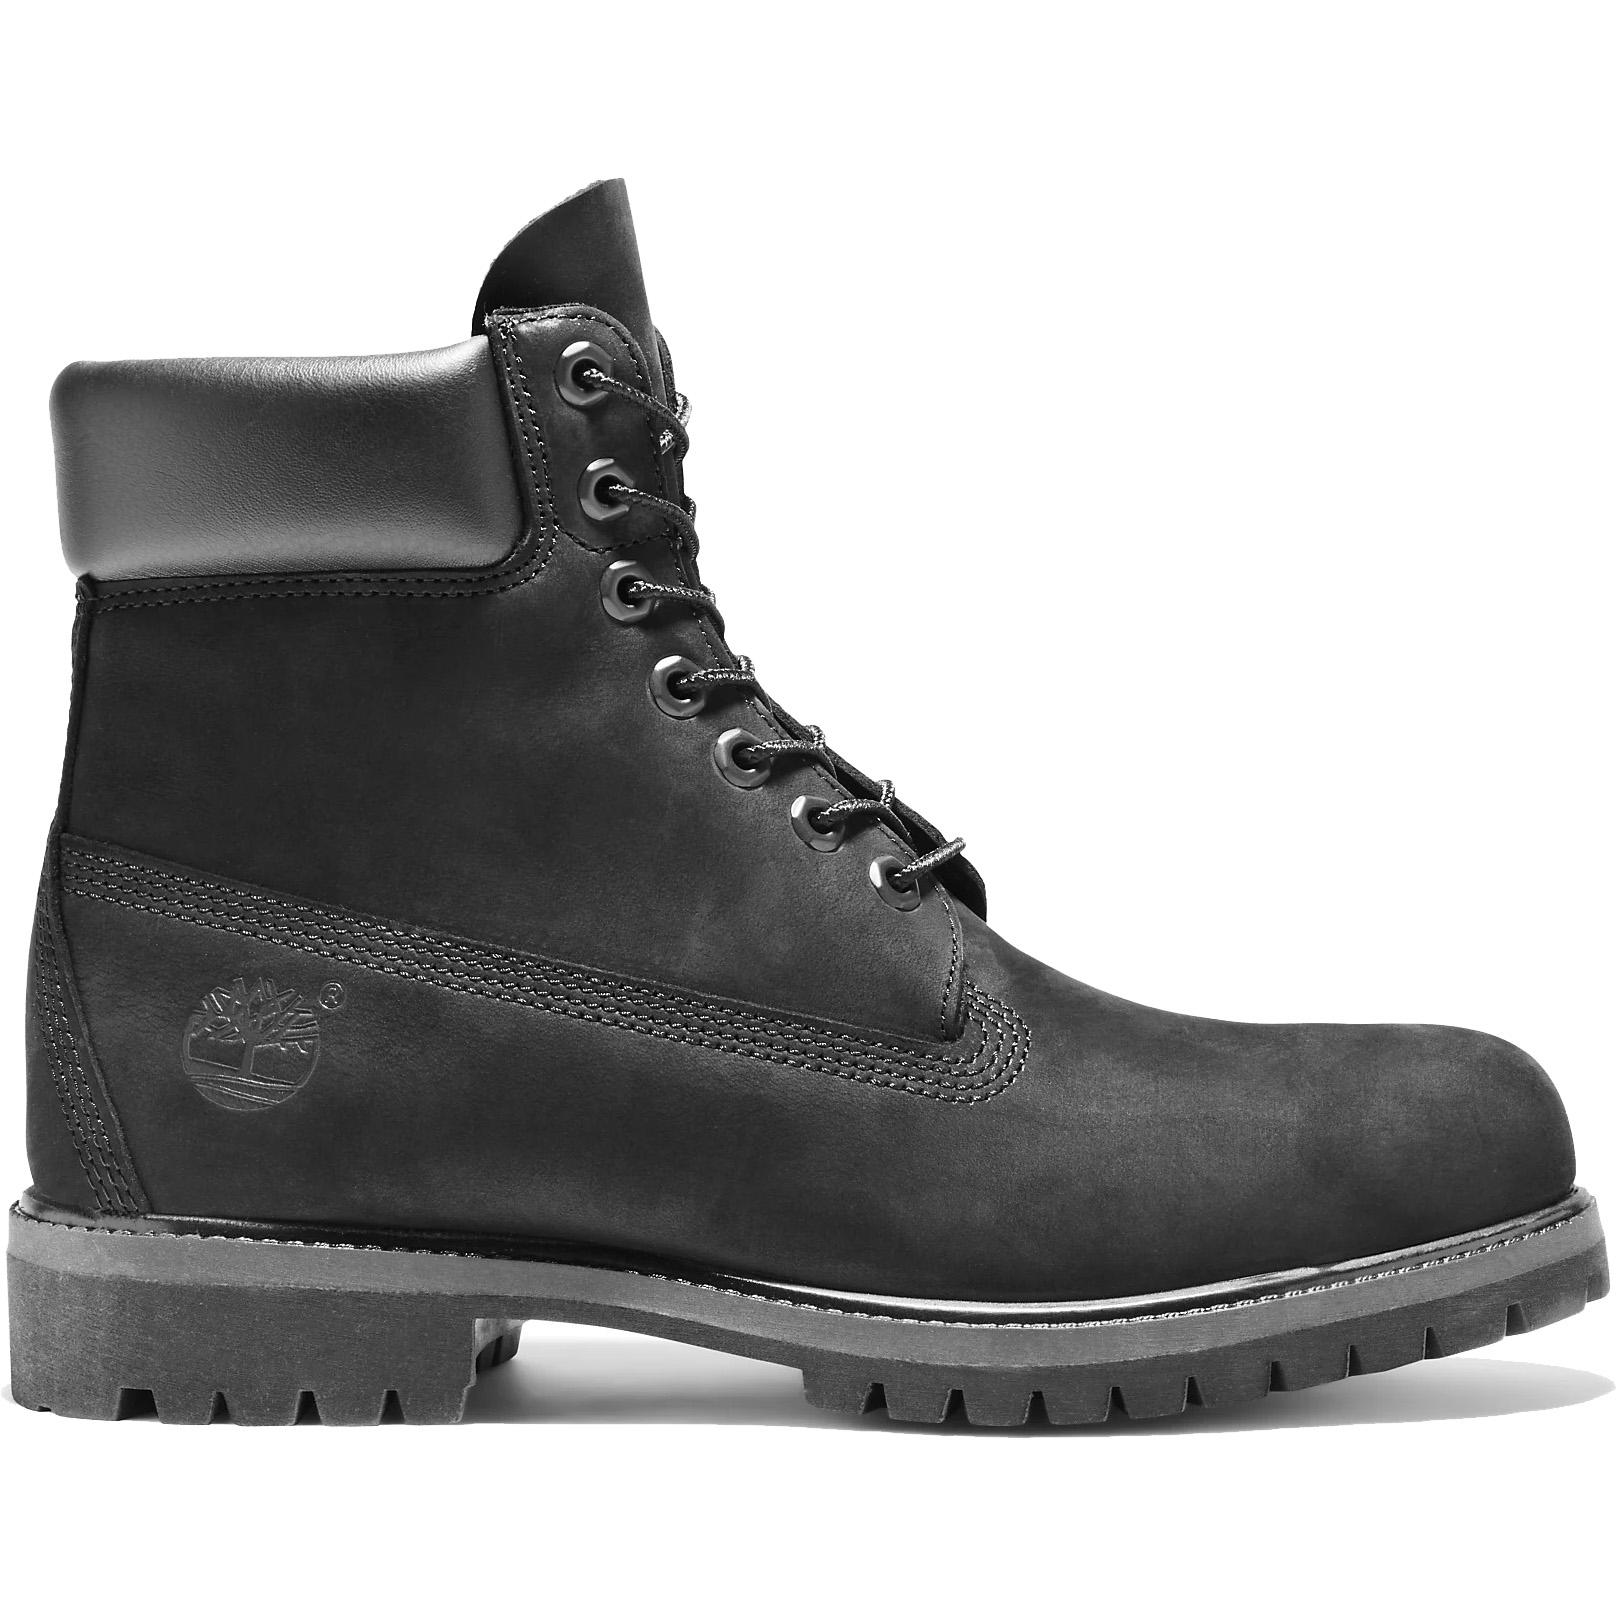 Timberland Mens 6 Inch Premium Black Classic Wide Fit Waterproof Boots - 10073 - Black